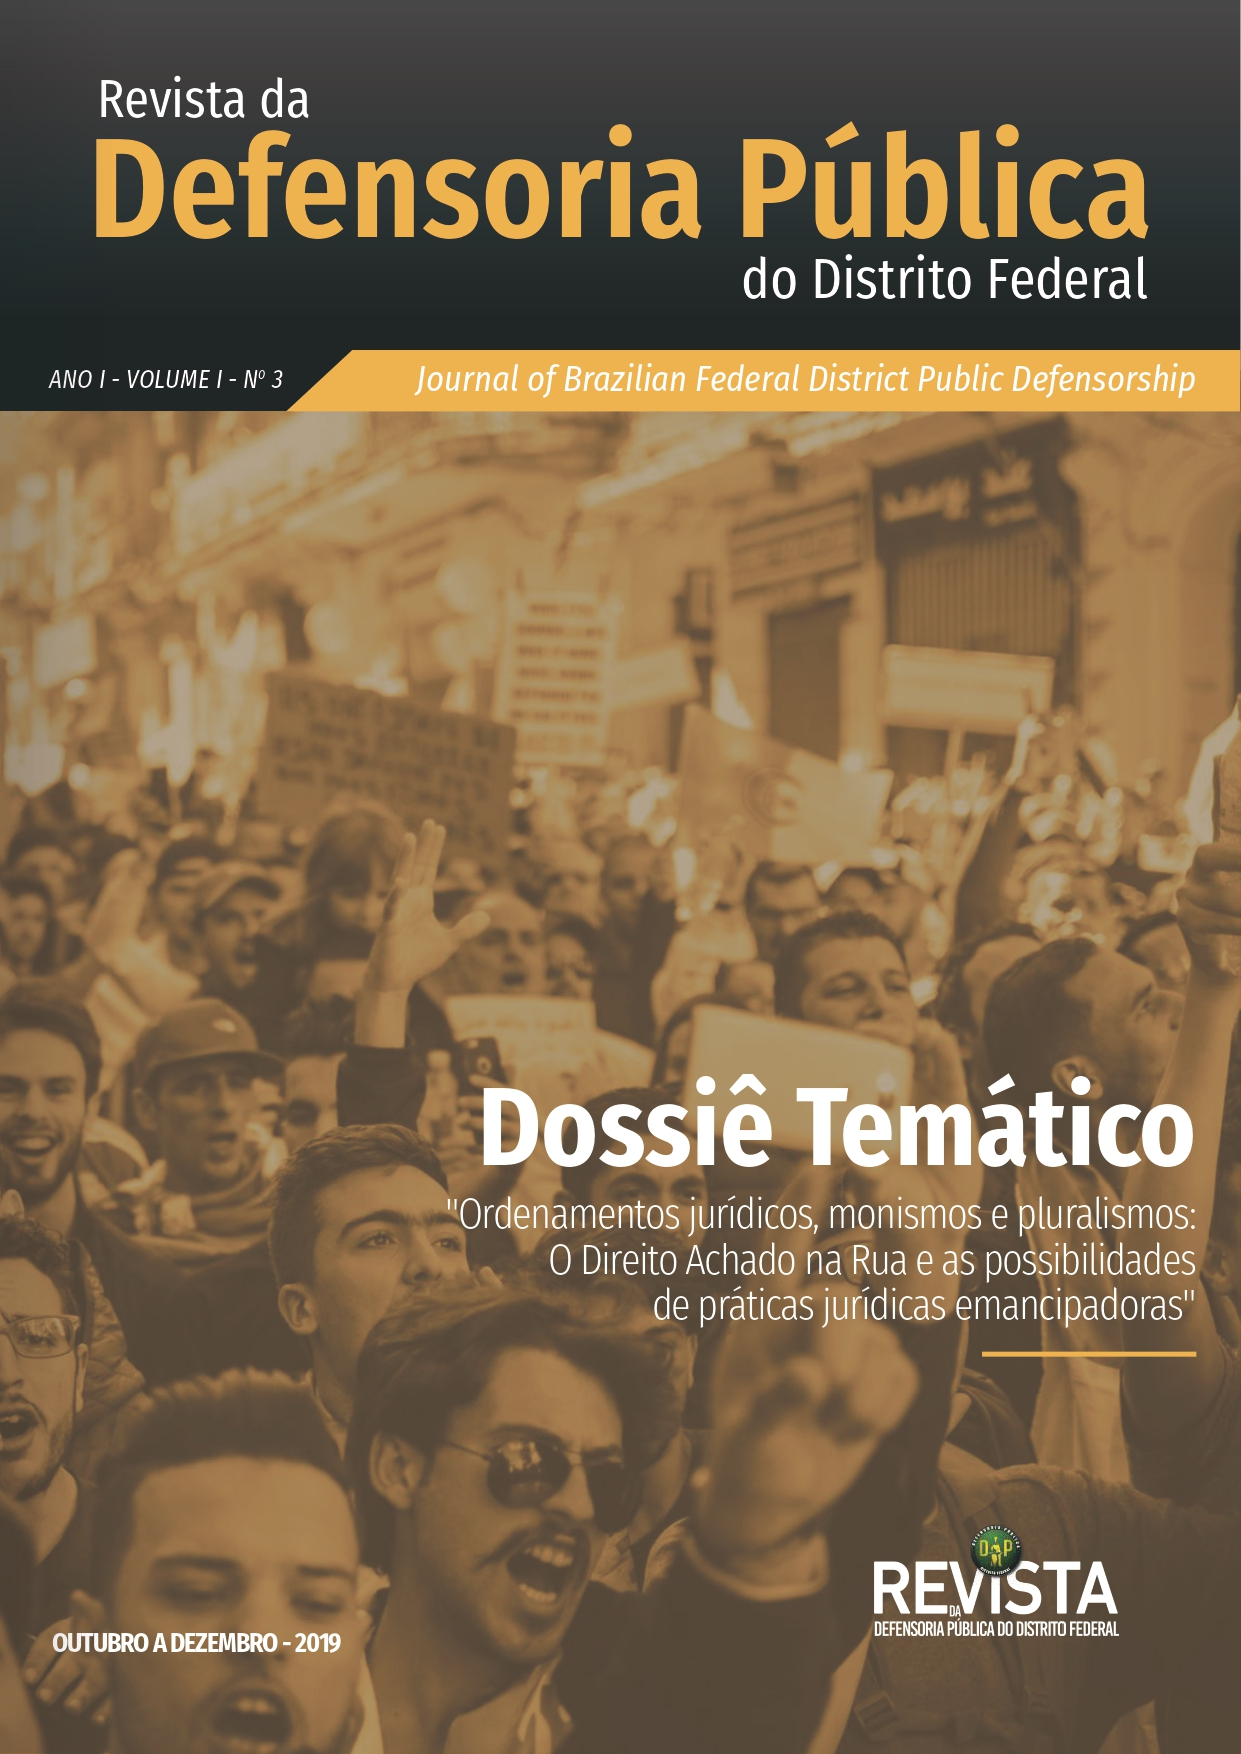 Capa da Revista da Defensoria Pública do Distrito Federal